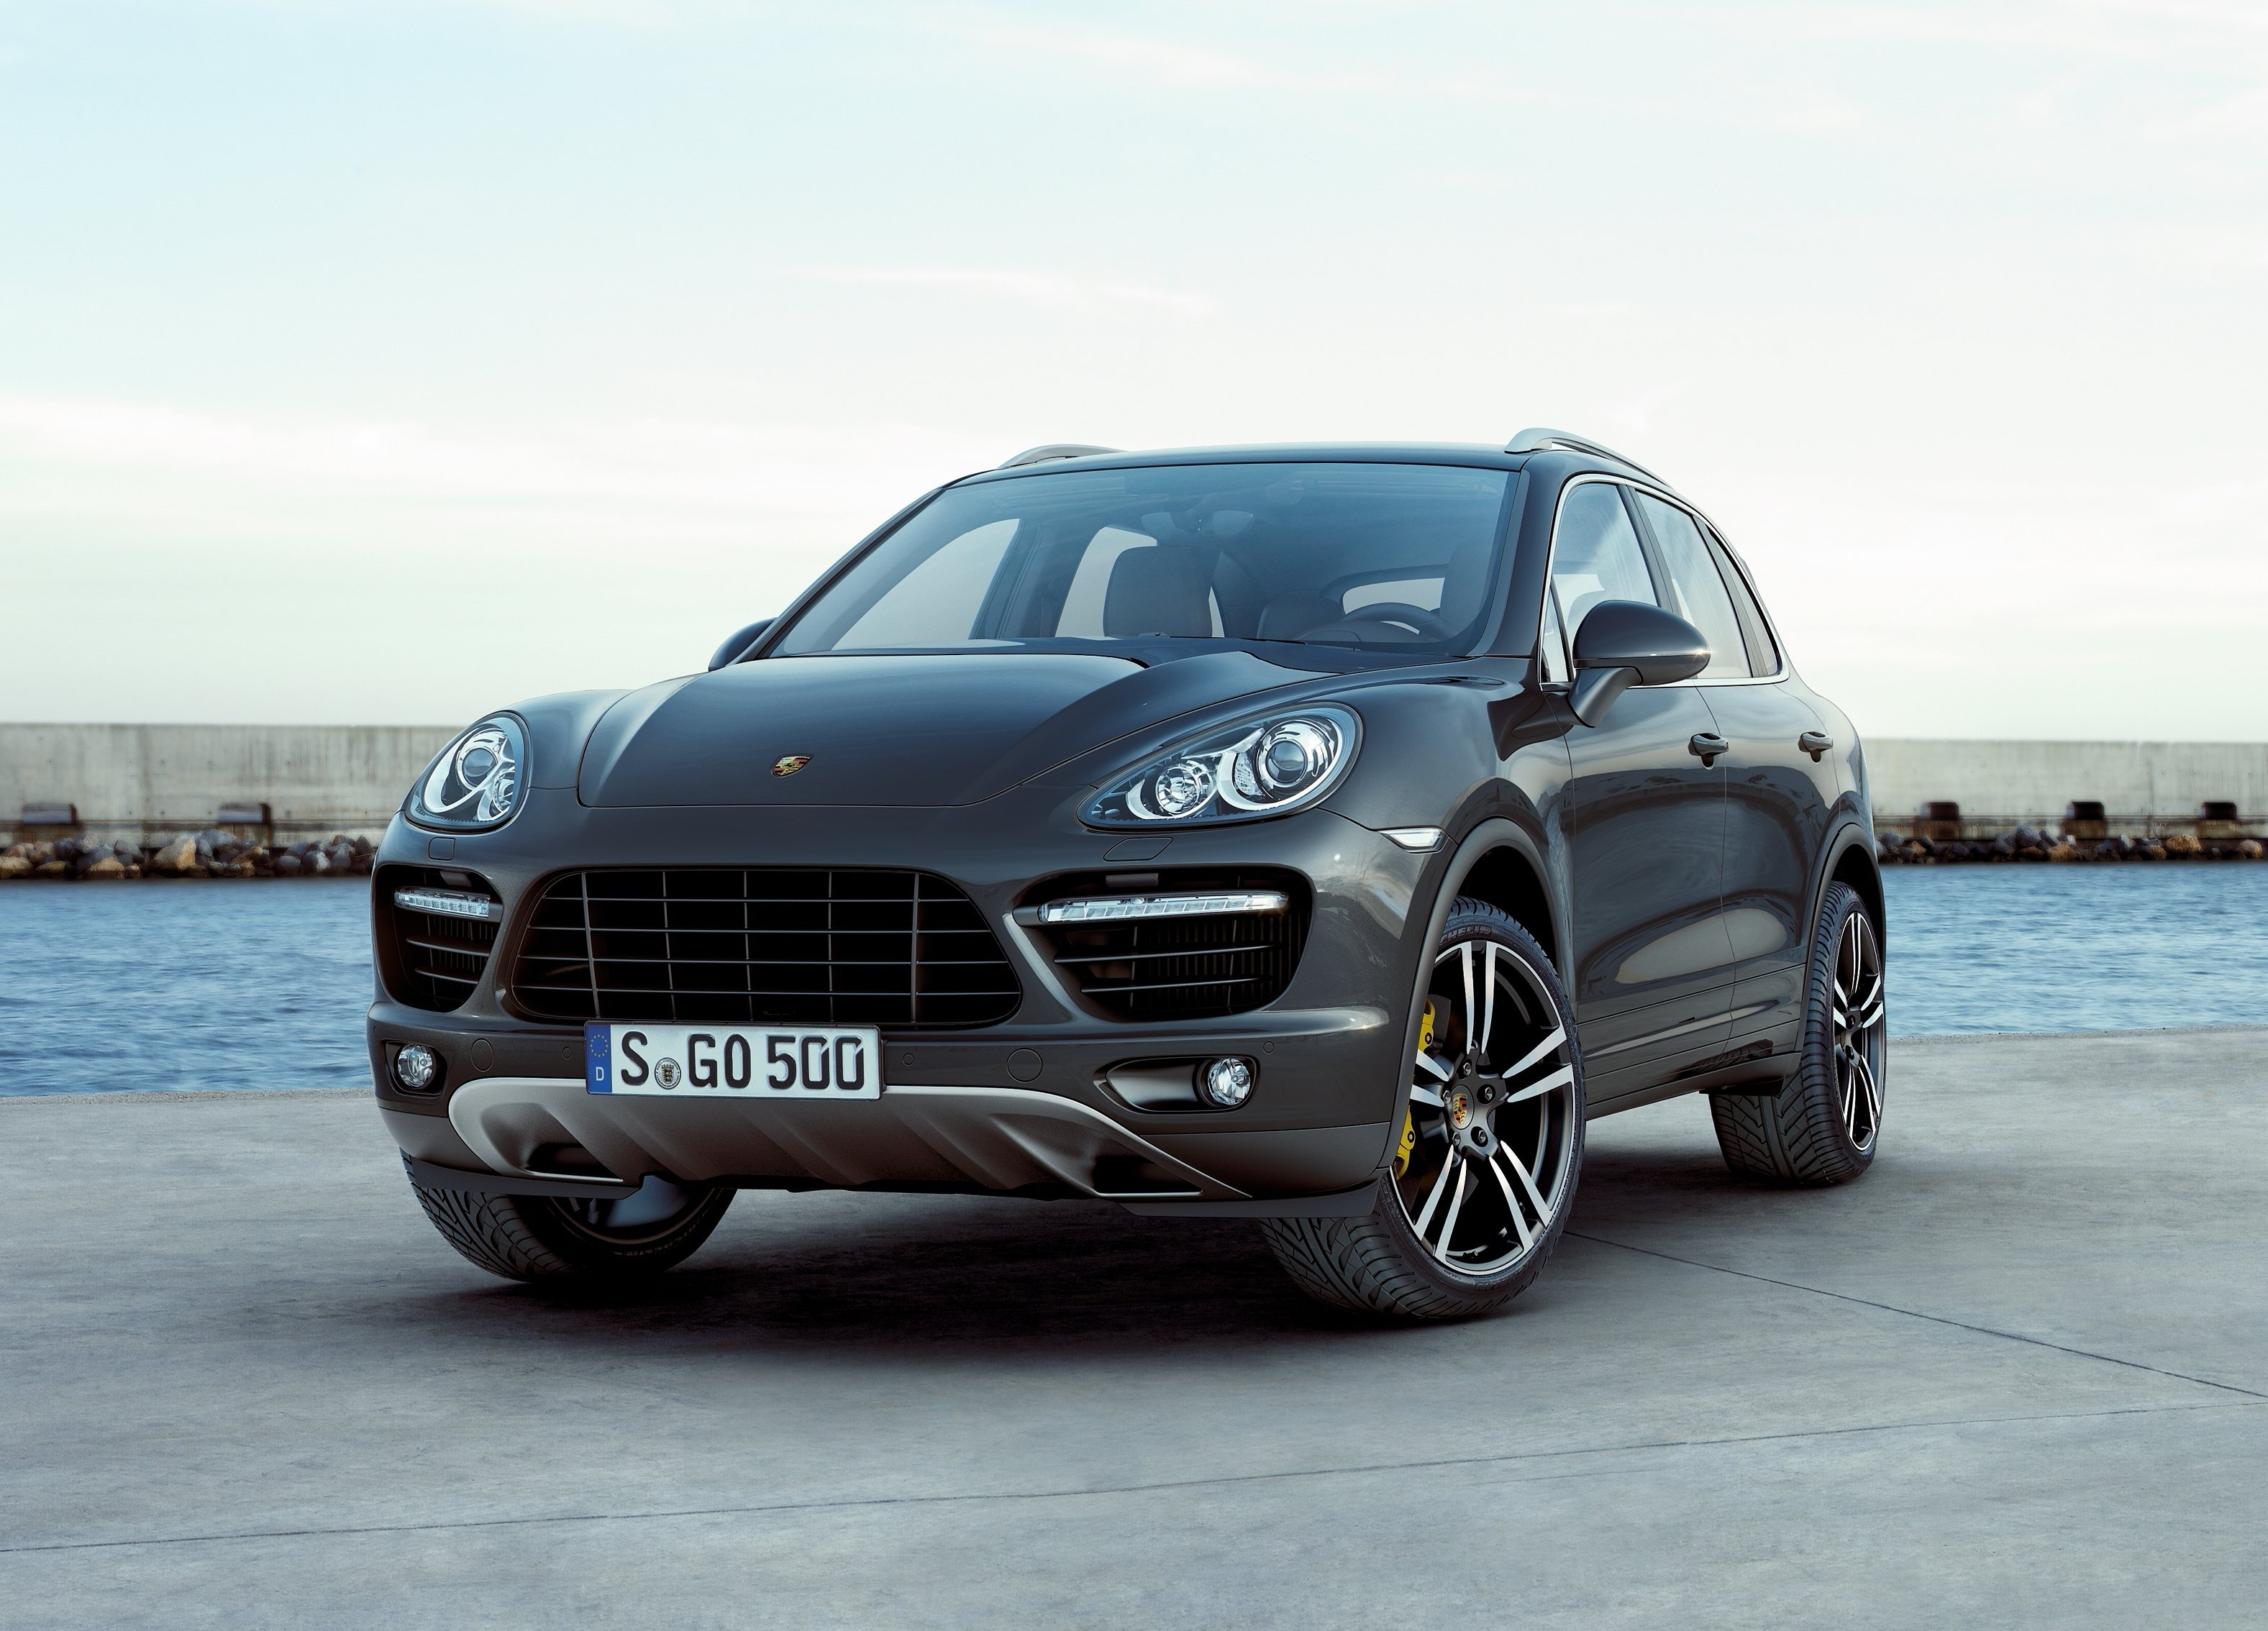 Germany Orders Porsche To Recall 22000 SUVs Over Alleged Defeat Device